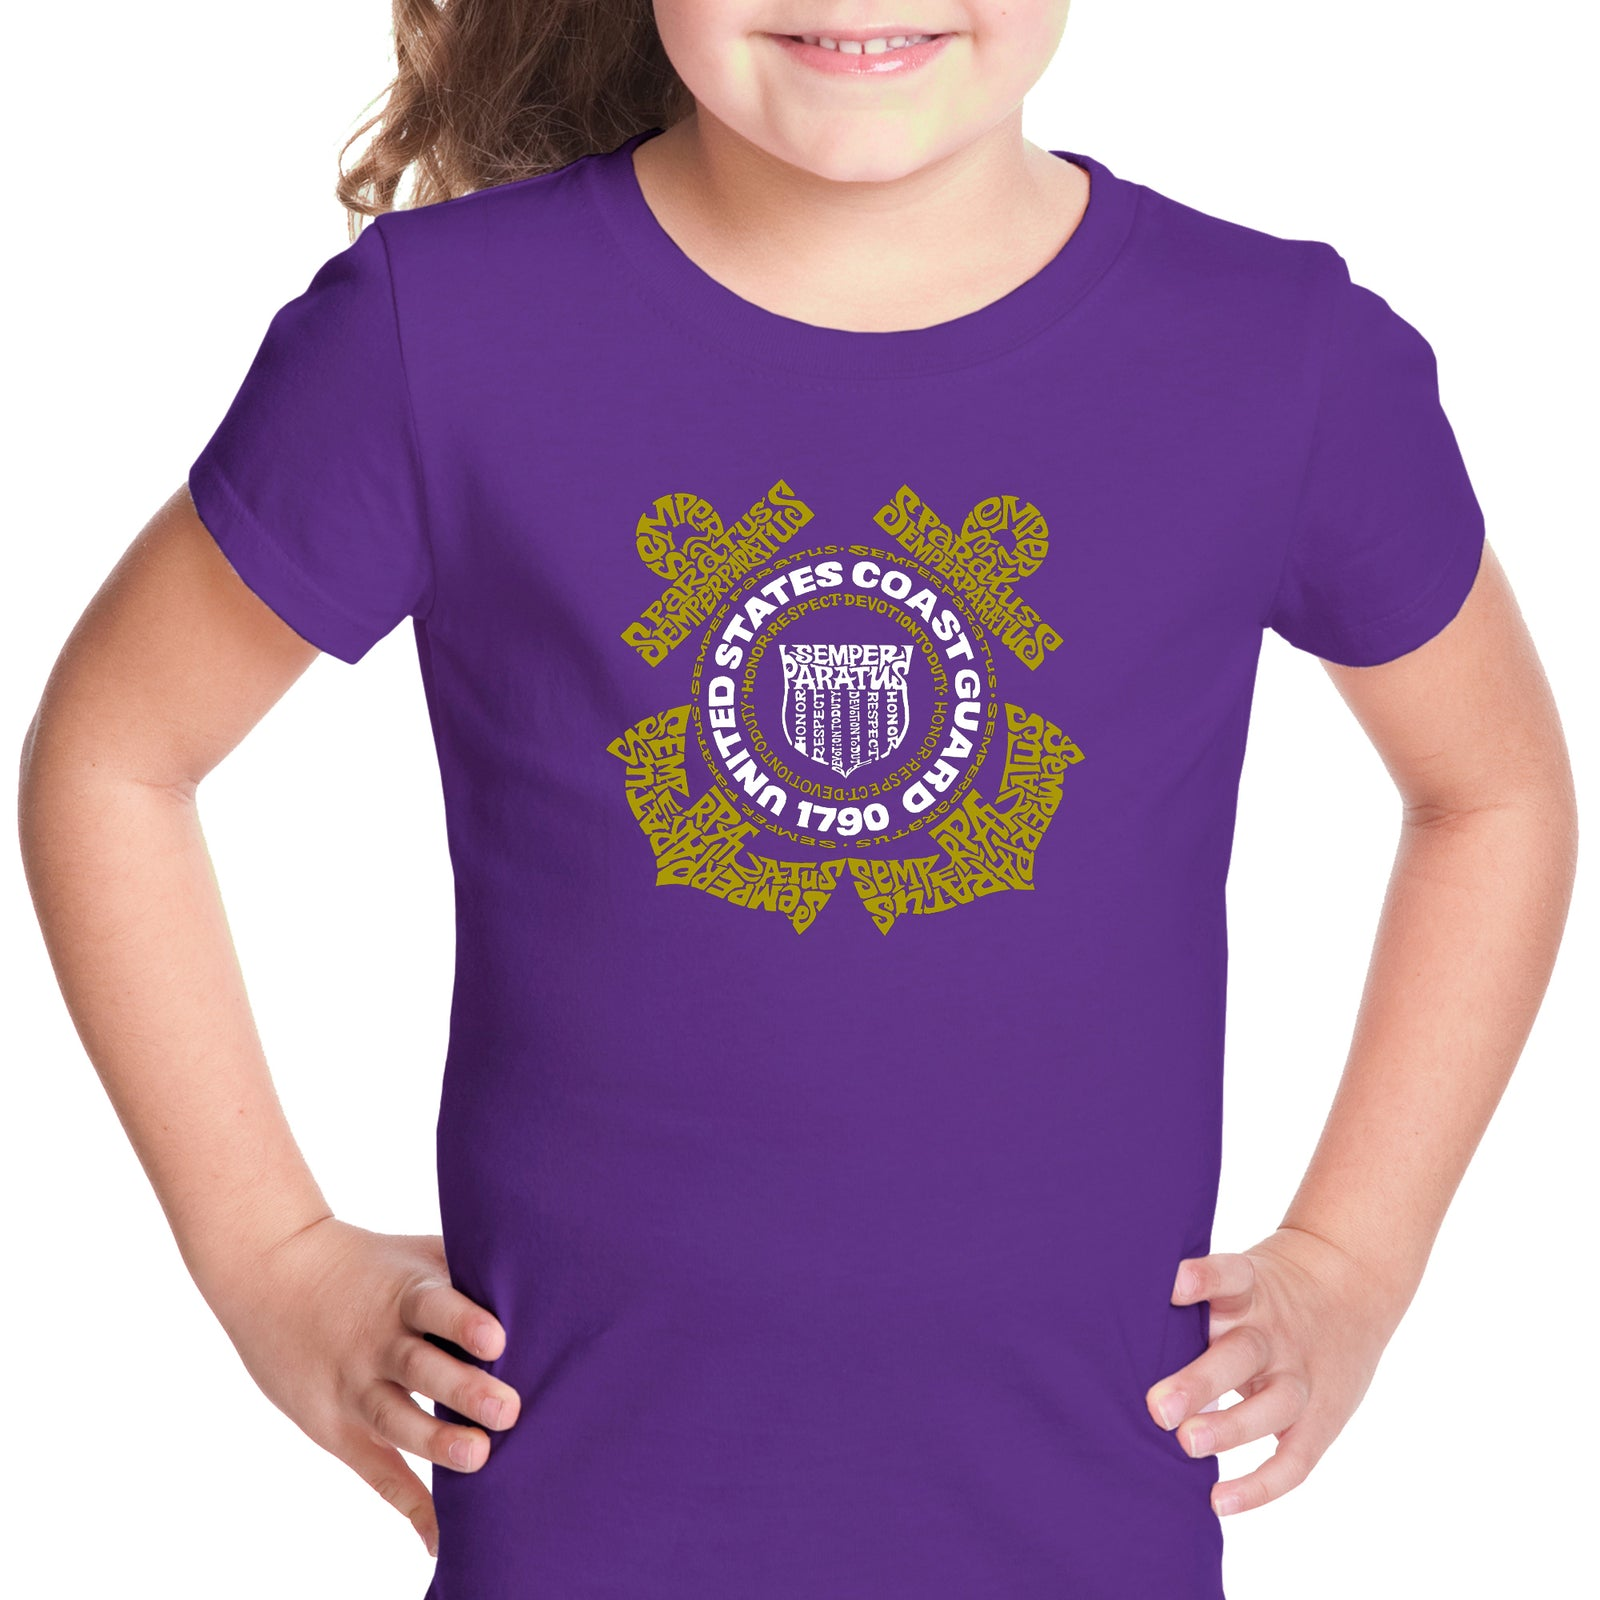 Girl's Word Art T-shirt - Coast Guard